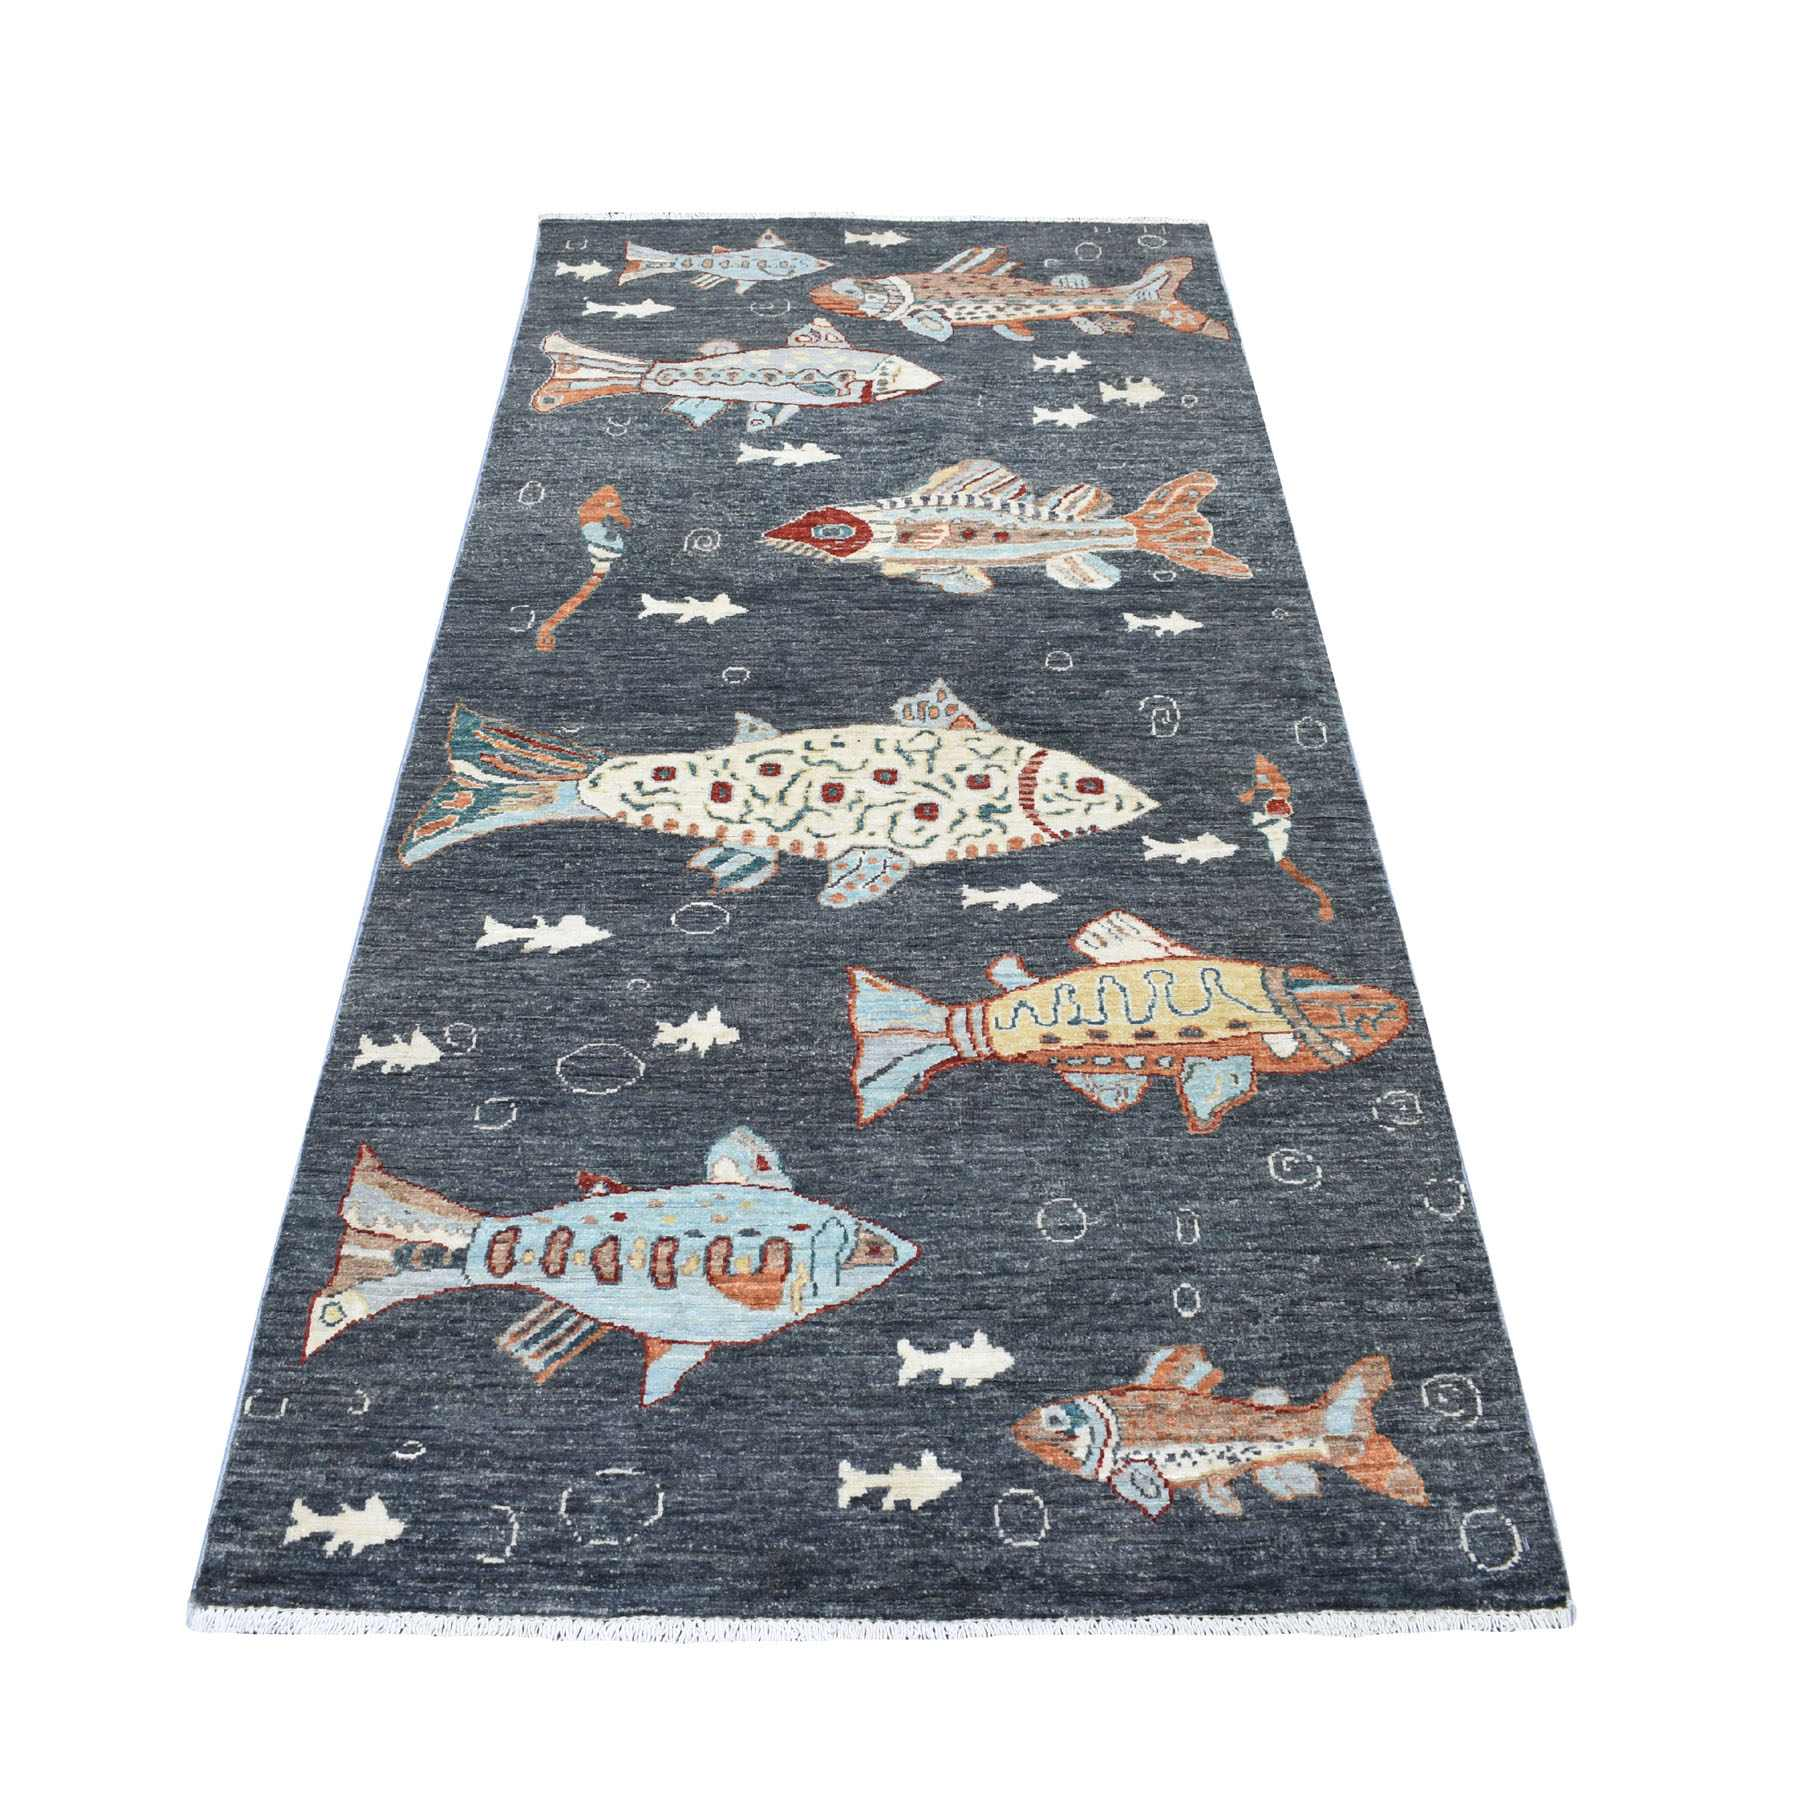 "3'7""x7'1"" Charcoal Black Oceanic Fish Design Afghan Peshawar Pure Wool Wide Runner Hand Woven Oriental Rug"